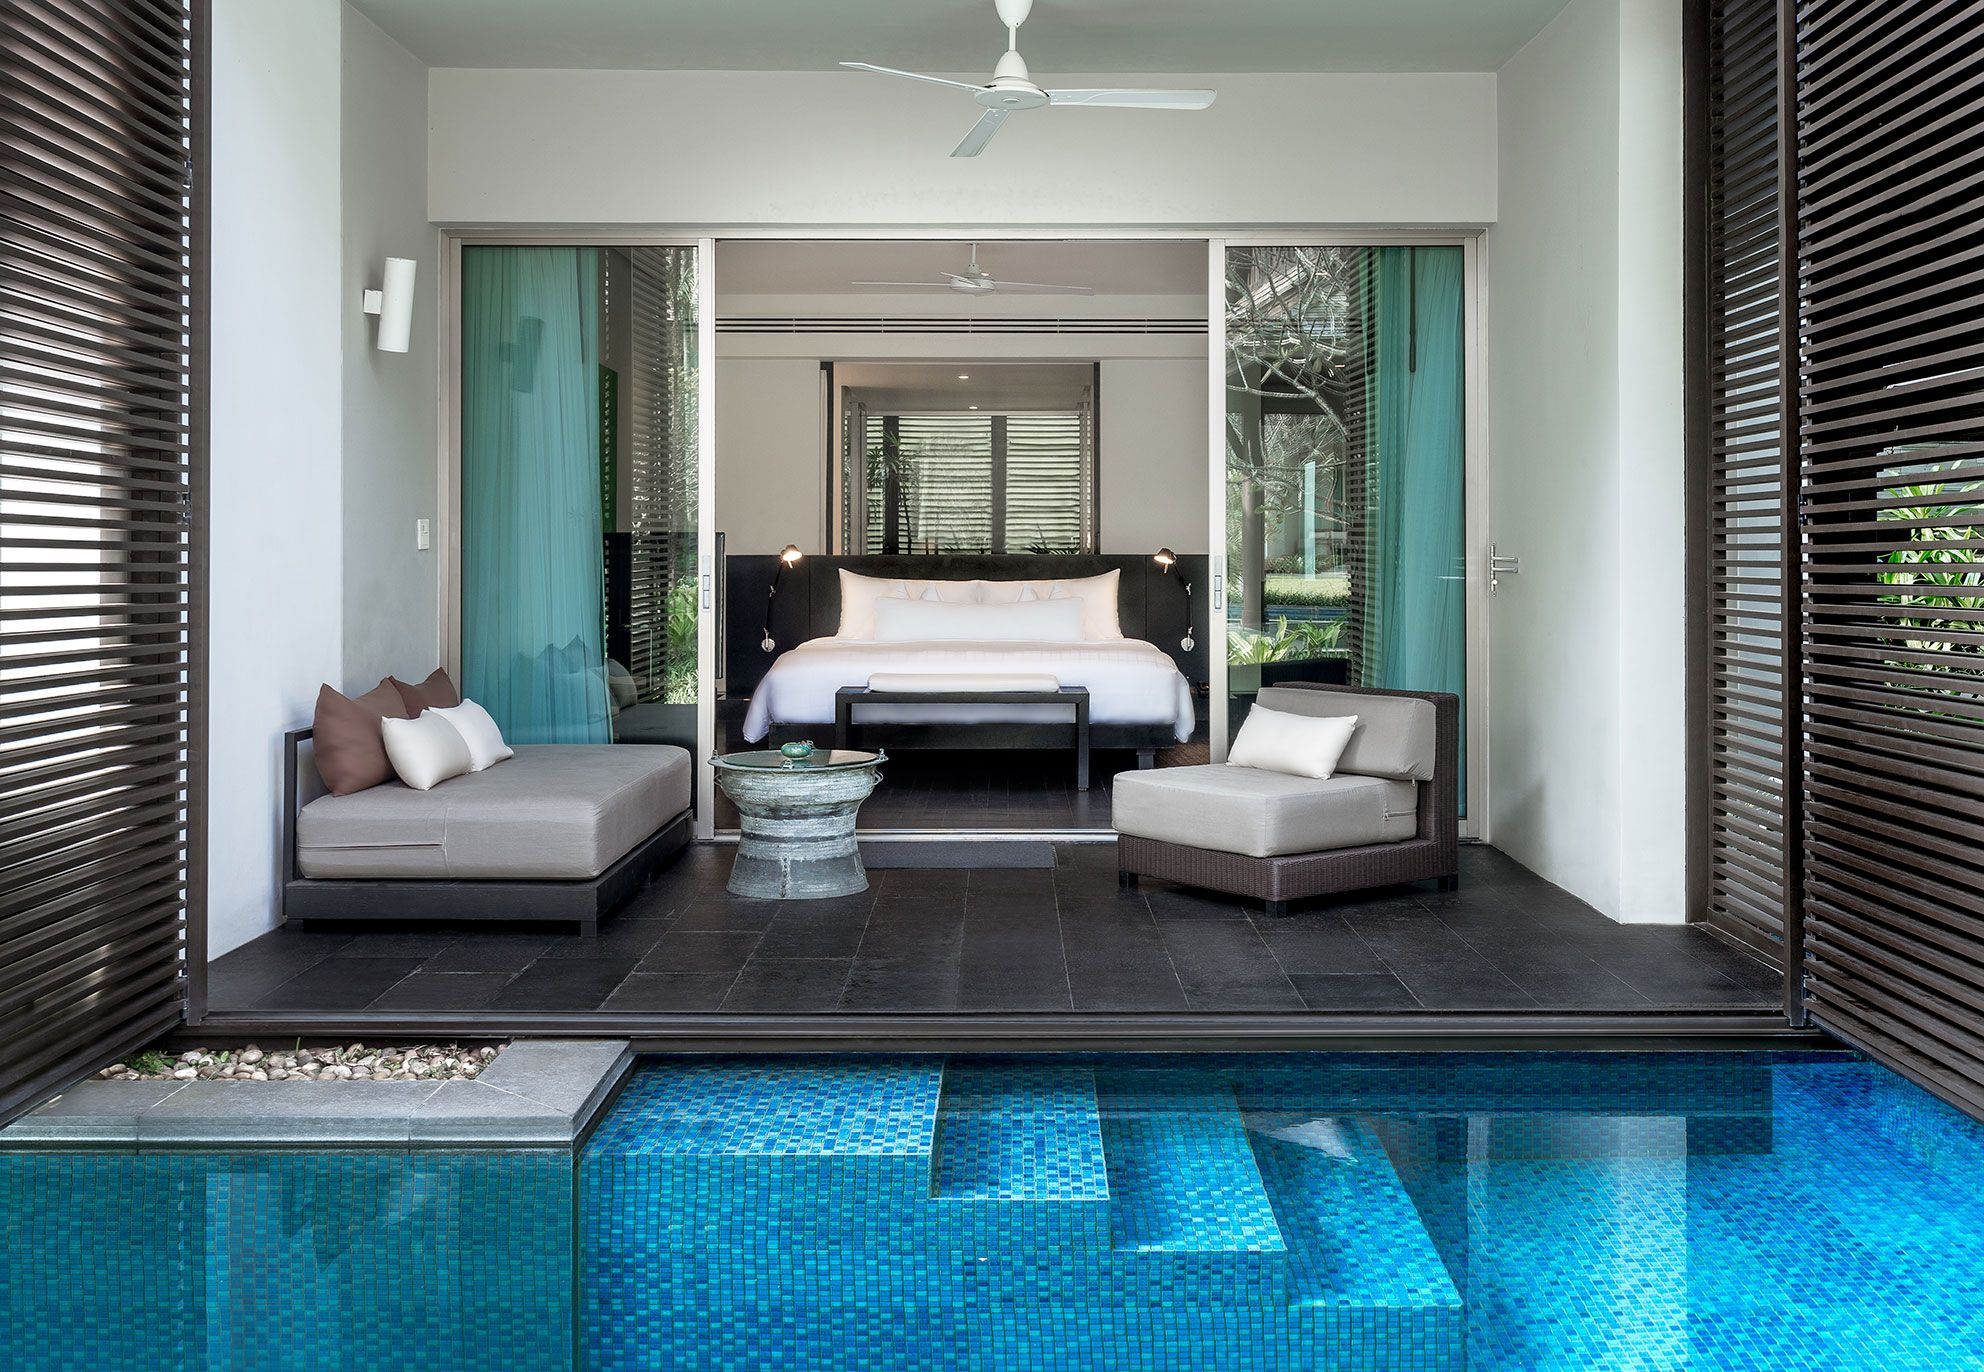 Twinpalms phuket luxury hotel thailand small luxury for Small luxury beach hotels